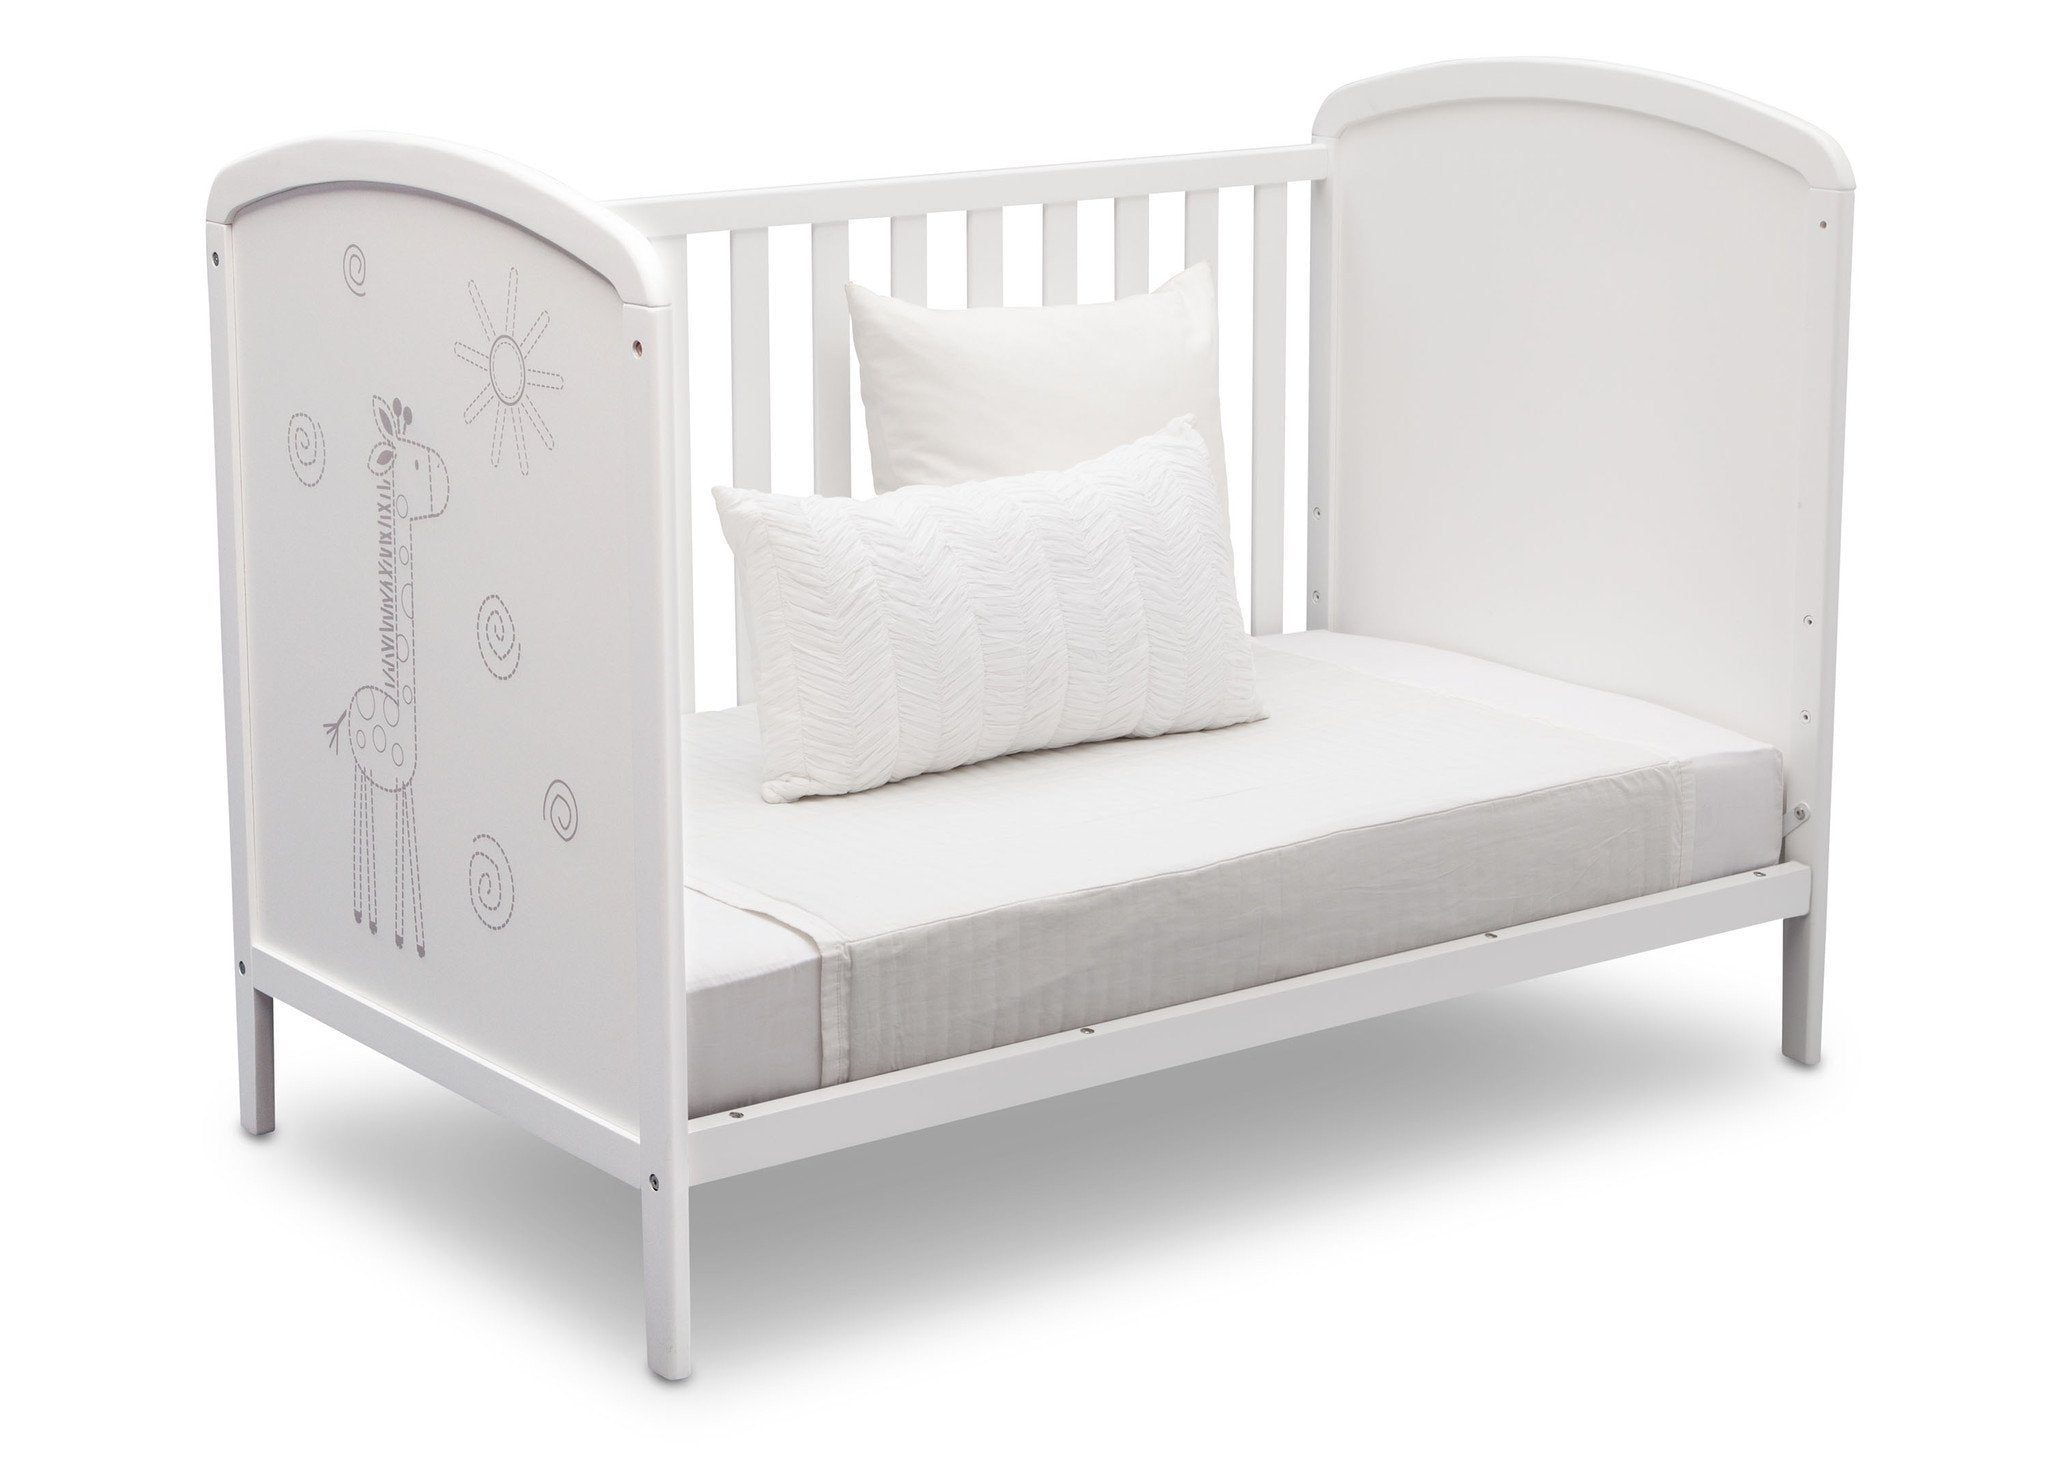 Delta Children, Bianca With Animal Motif (1303), Modbaby 3-in-1 Crib, angled daybed conversion, a6a